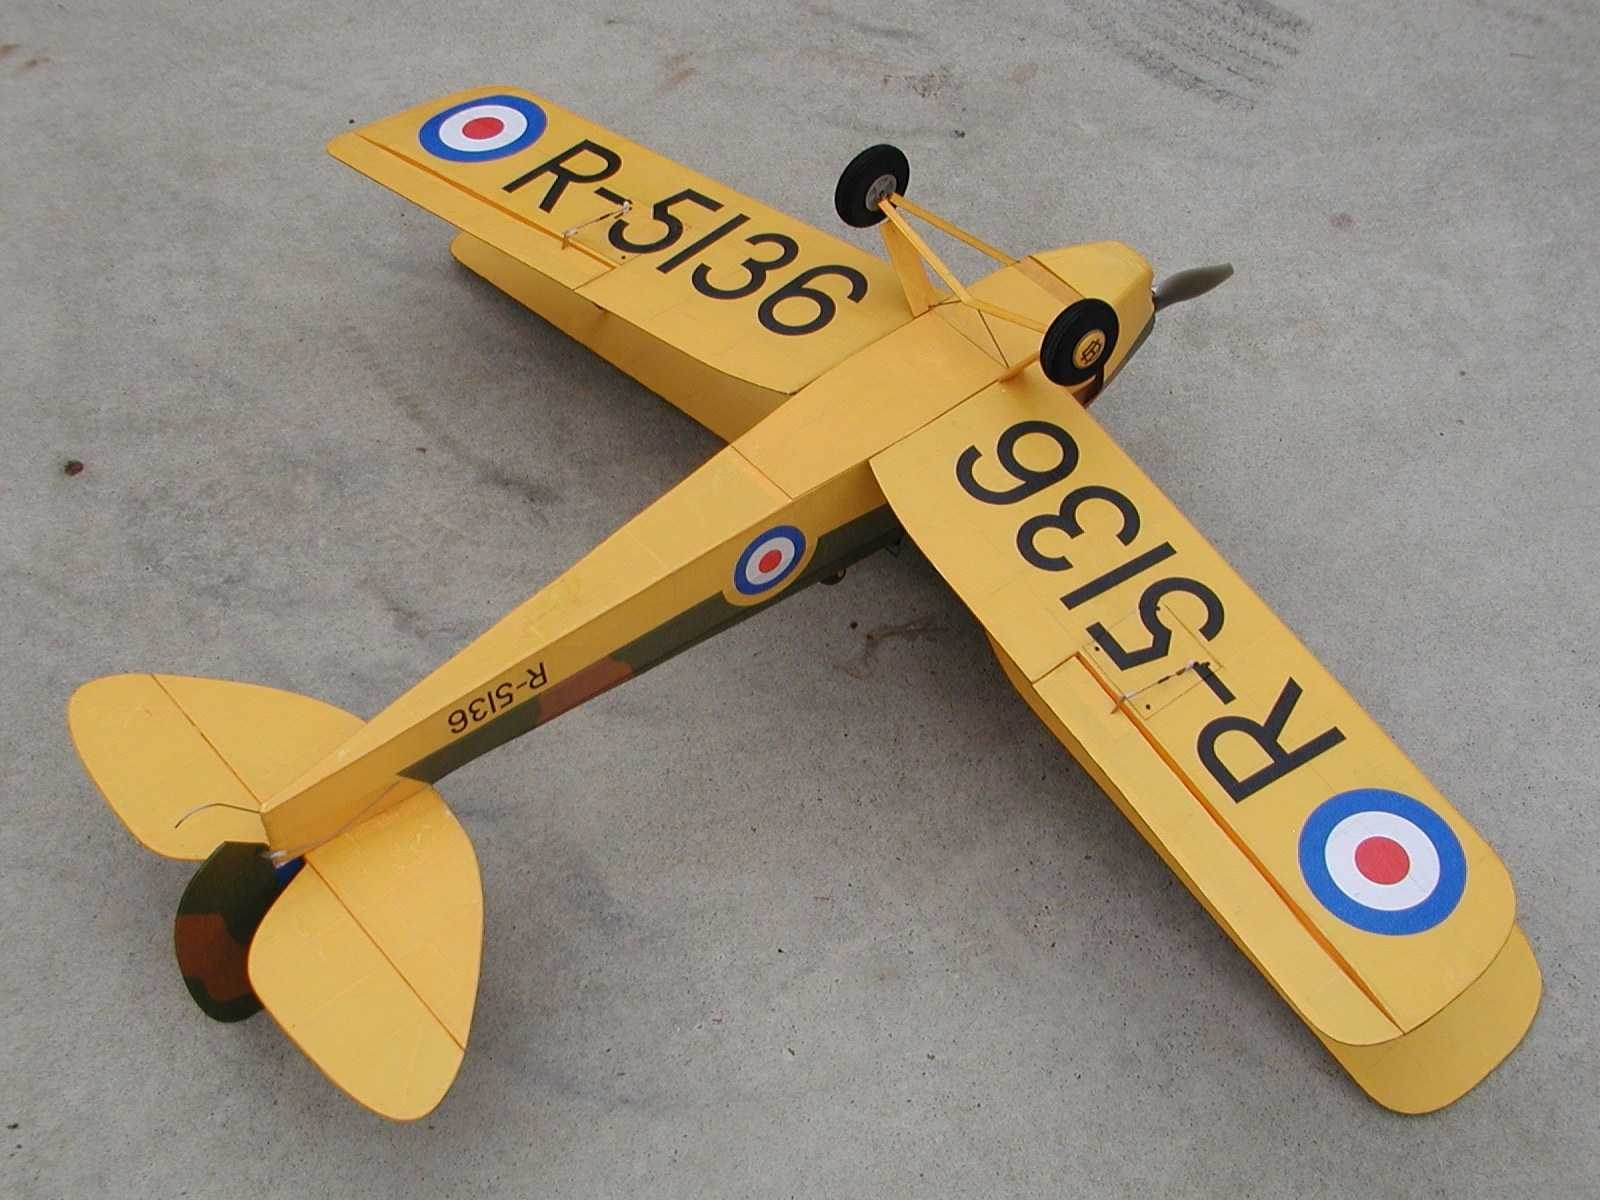 https://0201.nccdn.net/4_2/000/000/076/de9/Tiger-Moth_Finished2-1600x1200.jpg